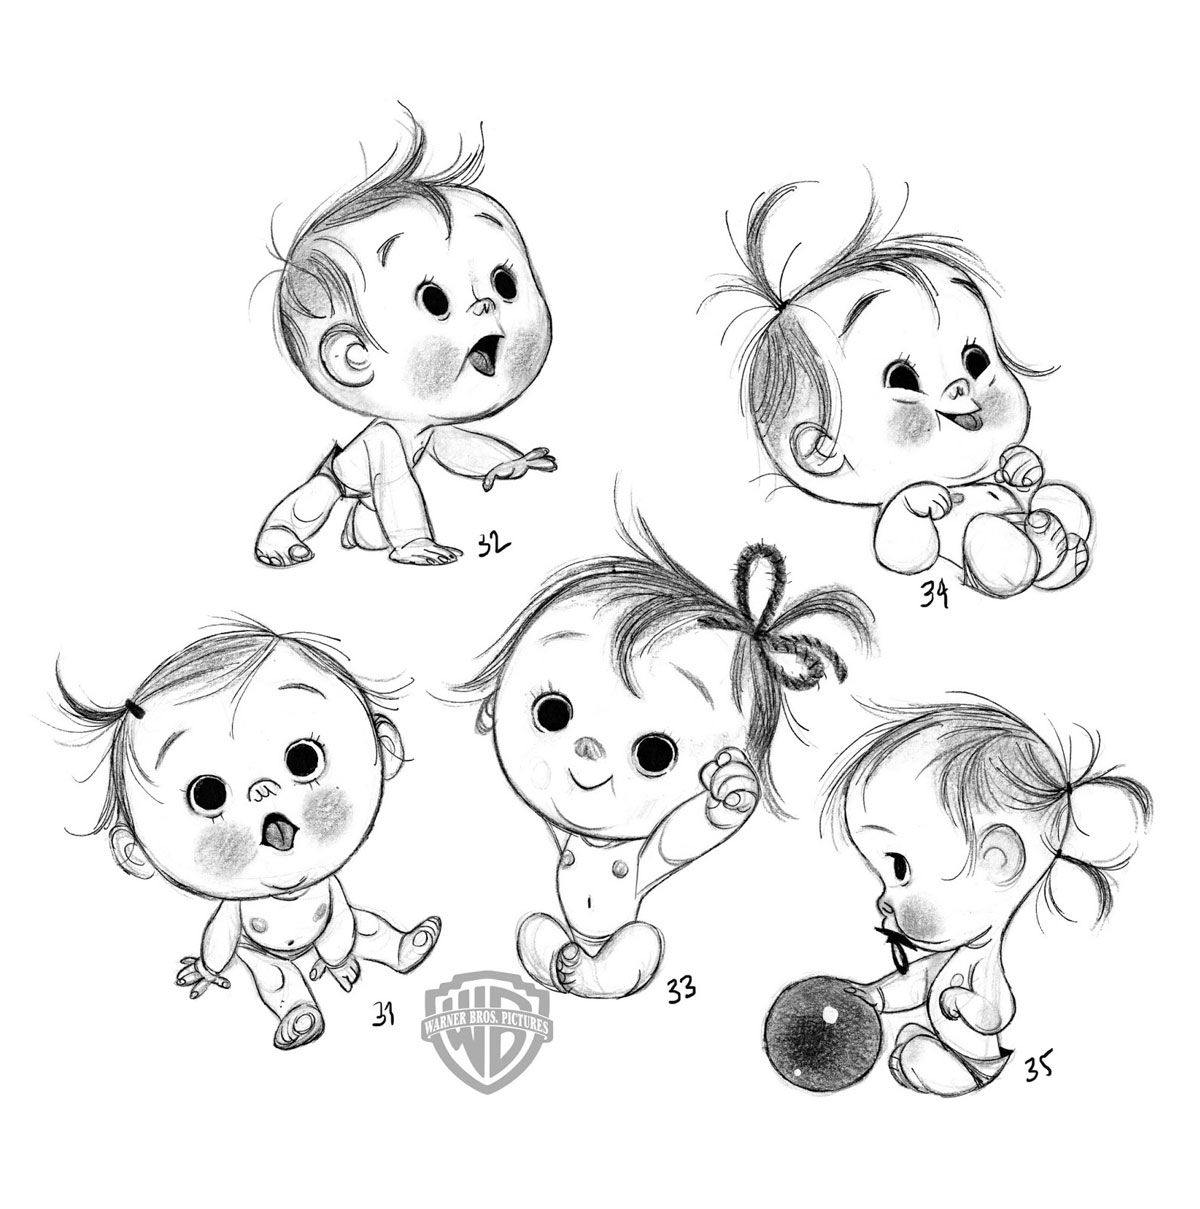 1200x1209 Simply Adorable Anette Marnat For Storks Movie Sketch